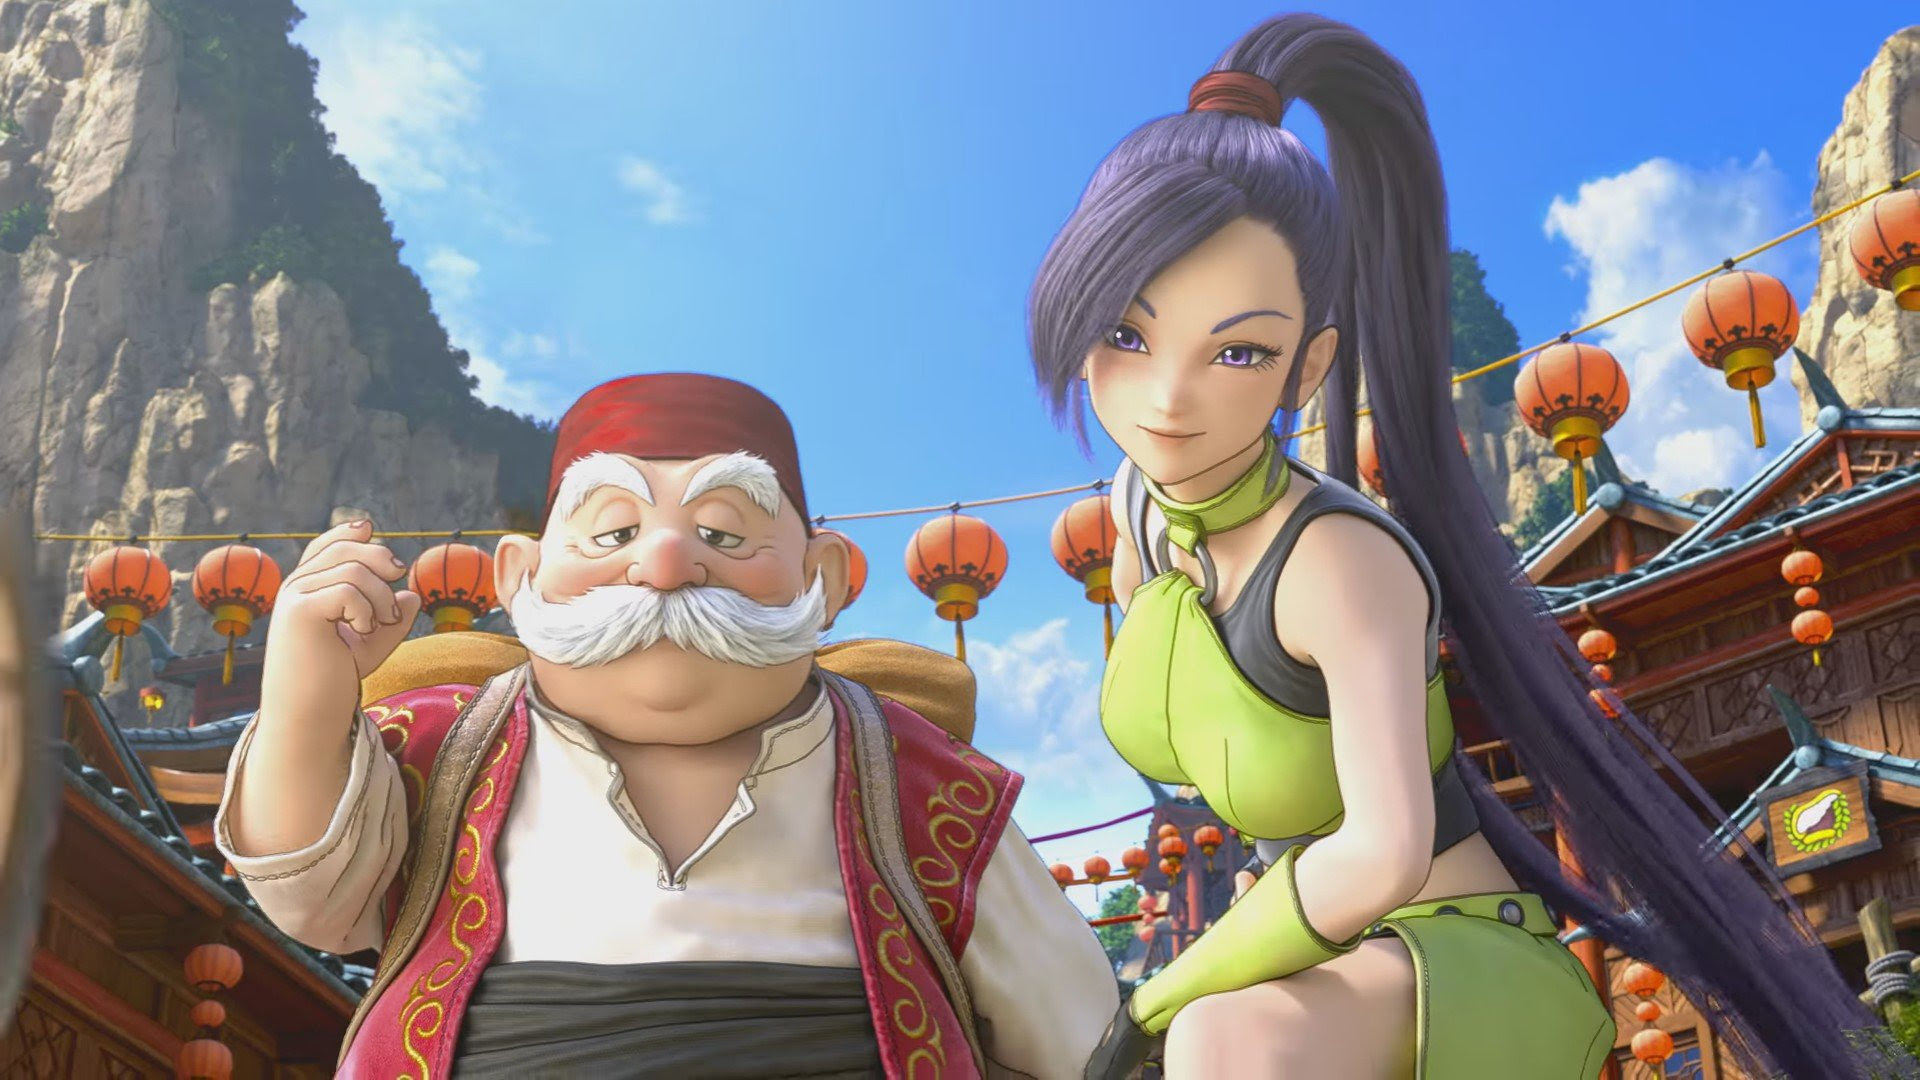 Dragon Quest XI's opening video is out, on the cusp of its 3DS/PS4 launch screenshot